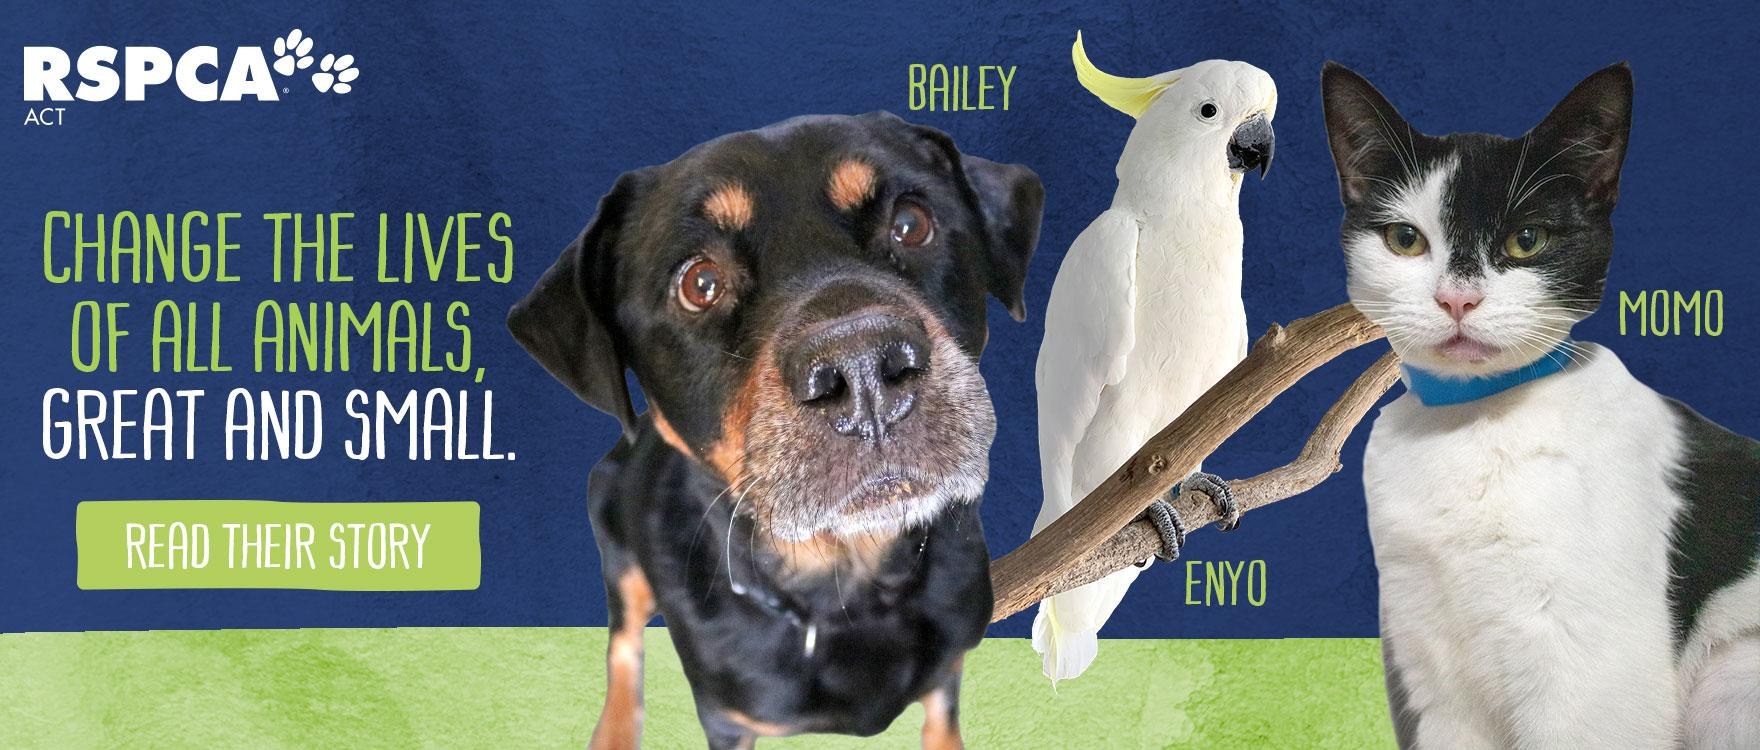 Bailey, Momo and Enyo needed help, will you be there for others just like them?